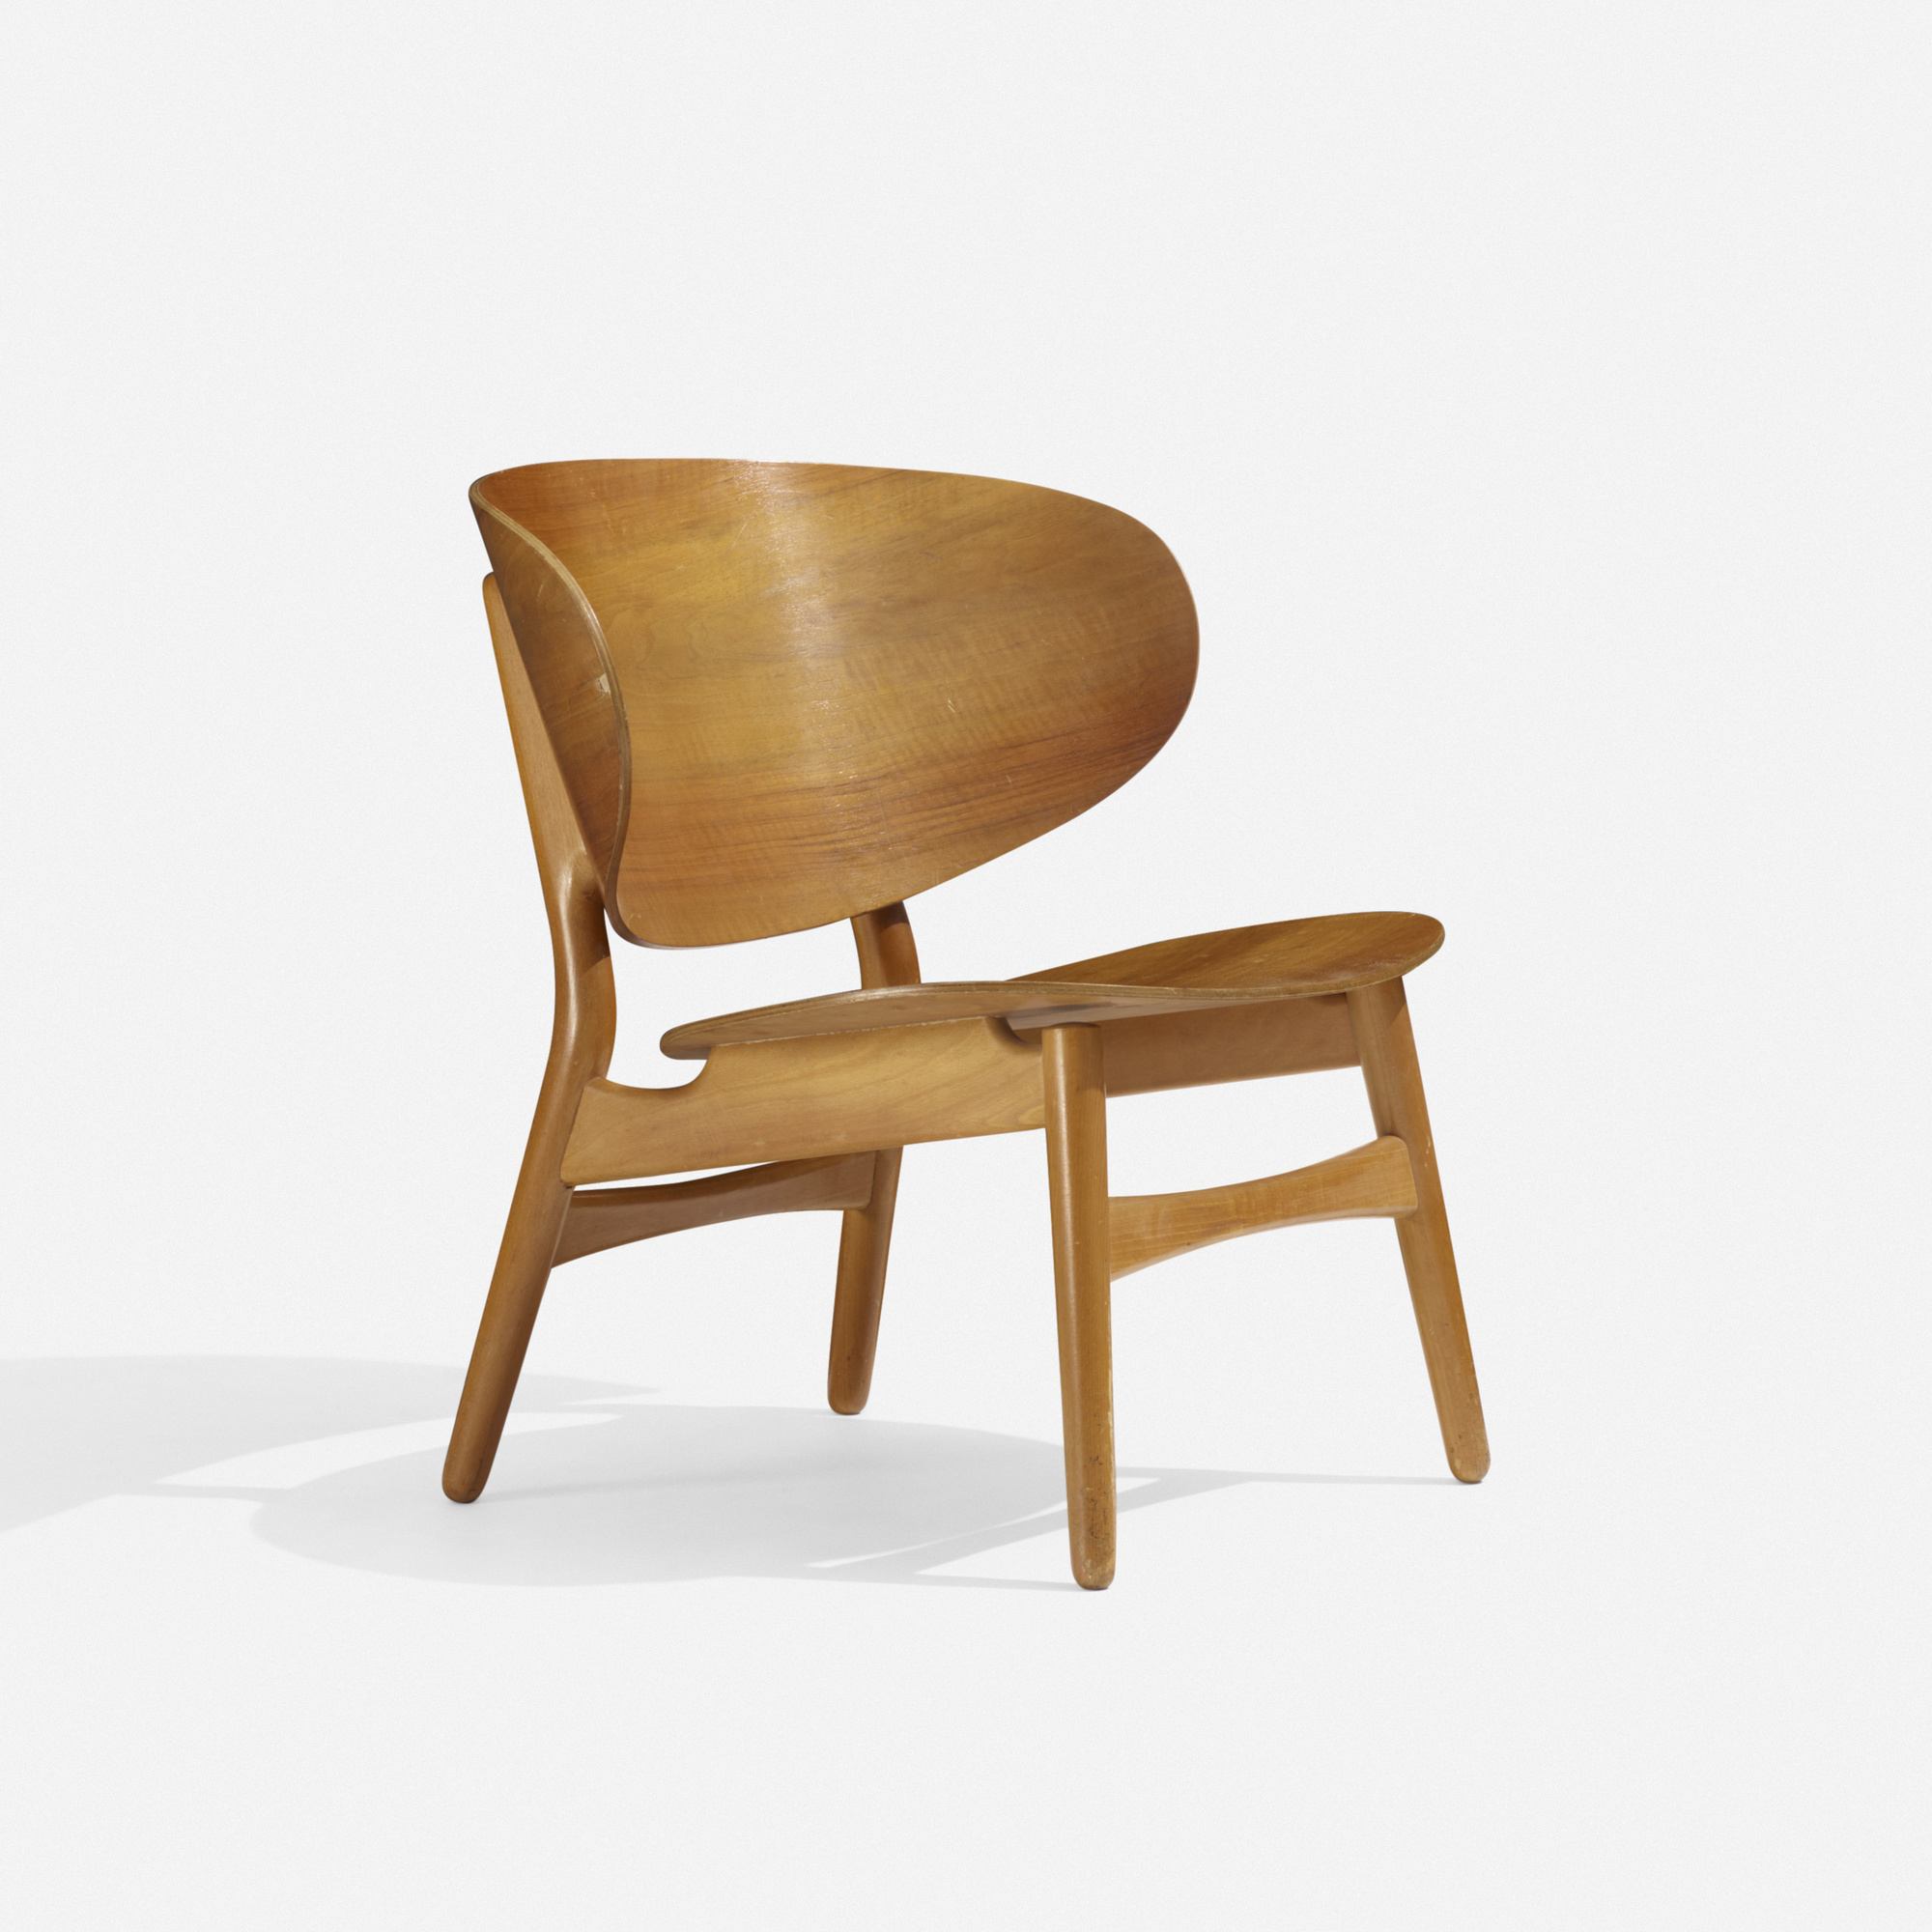 135 hans j wegner shell chair - Danish furniture designers ...